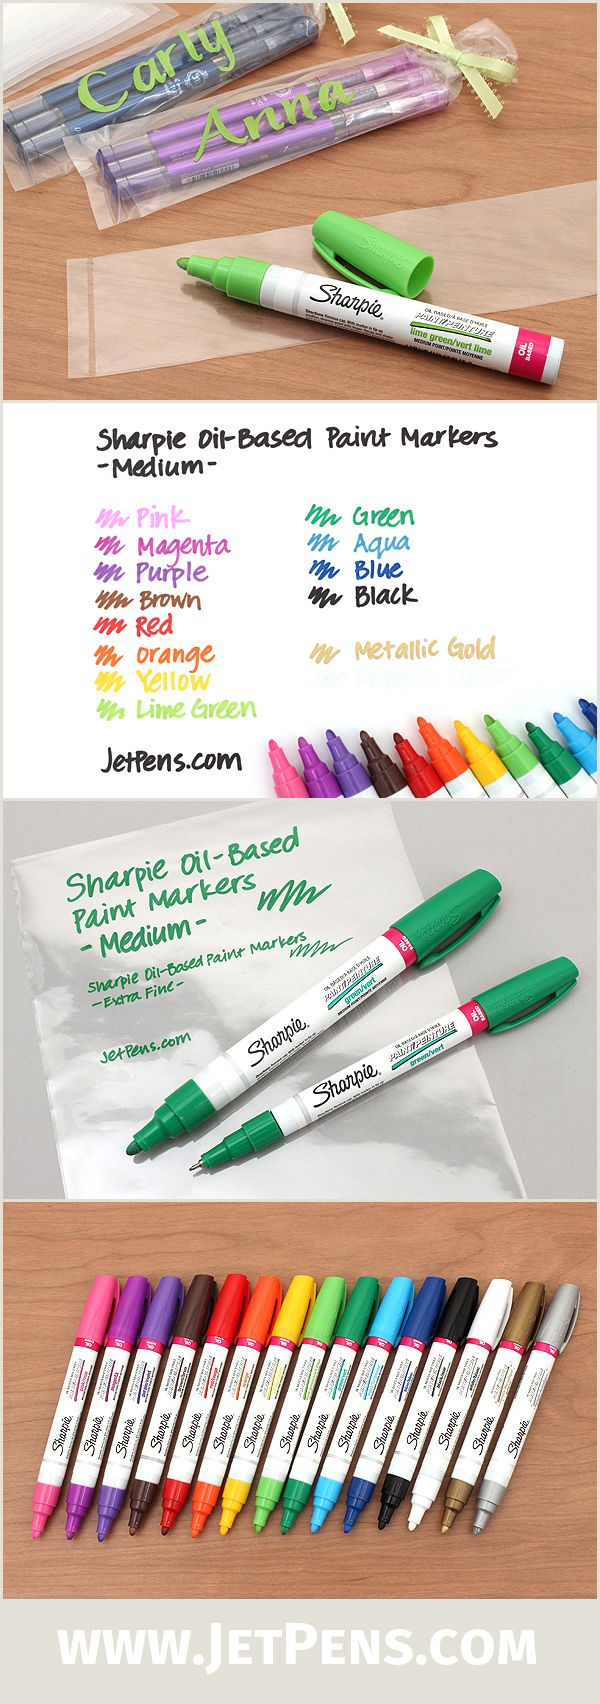 17 best ideas about oil sharpie on pinterest sharpie mug for Paint pens for wood crafts